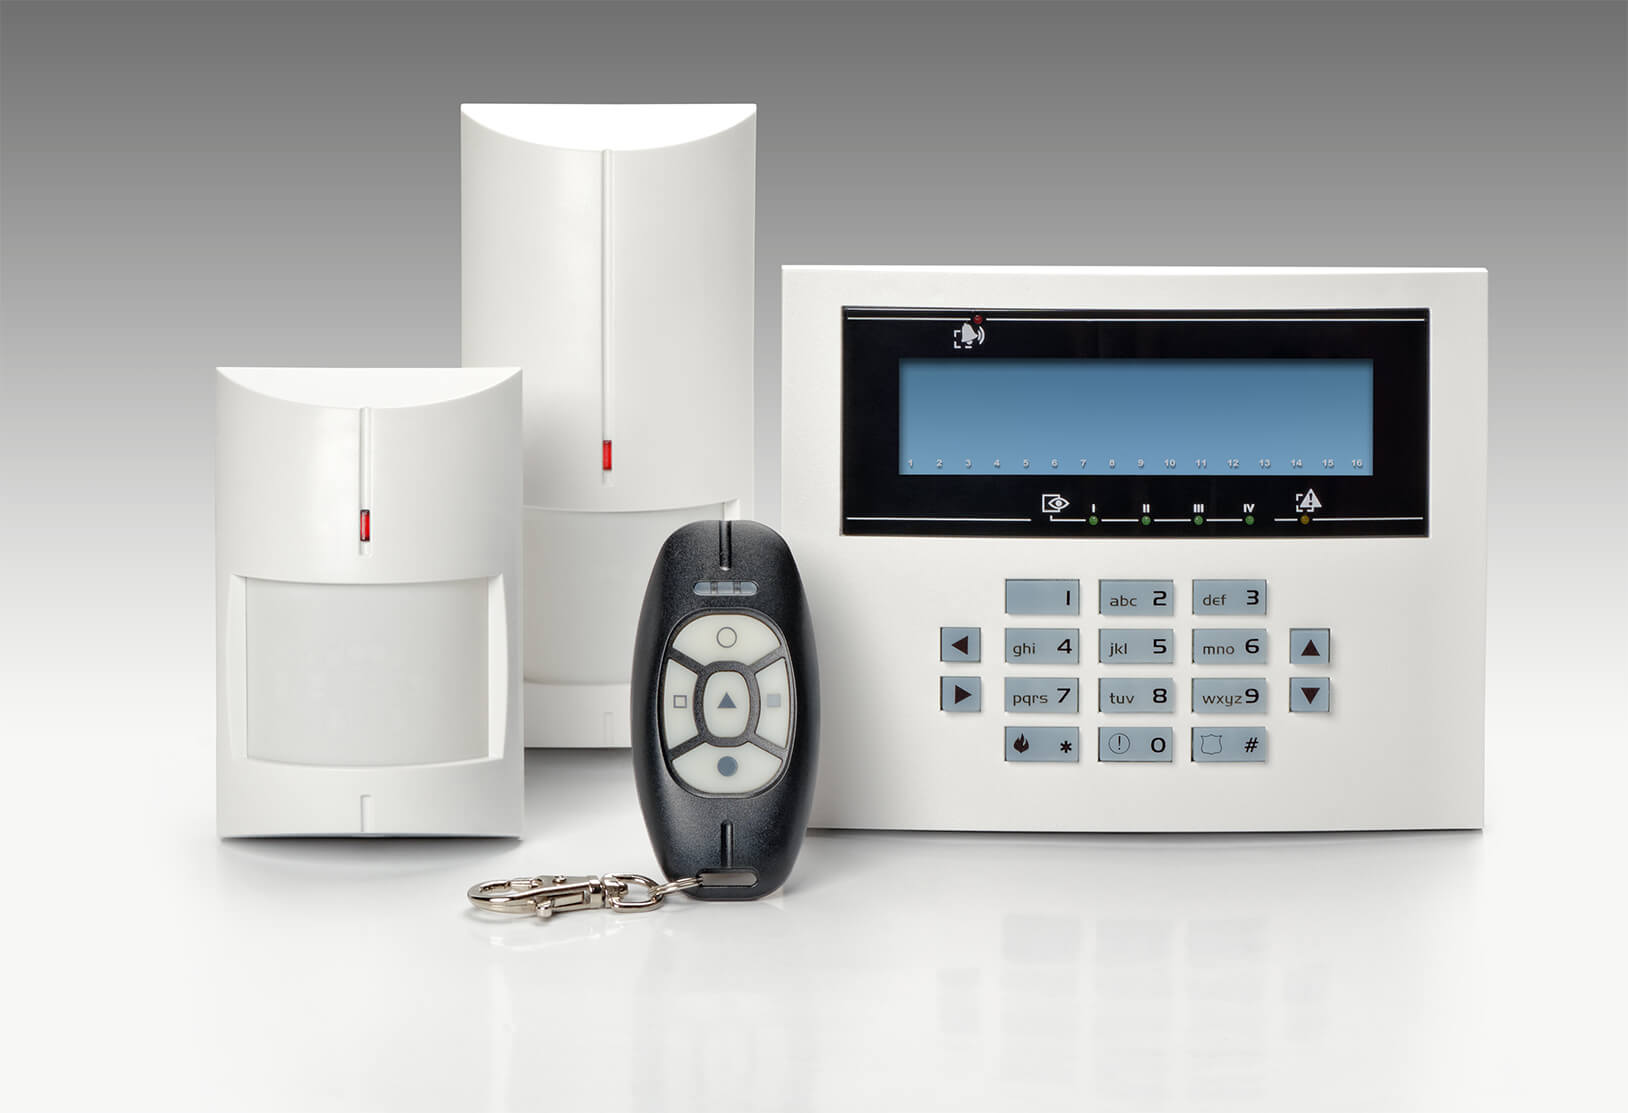 Business & Residential NACOSS Approved Burglar Alarms In Hornsey N2 - Local Hornsey N2 security company.Call 02078872244 - Dedicated to Safety & Security. Companies, shops and homes ..